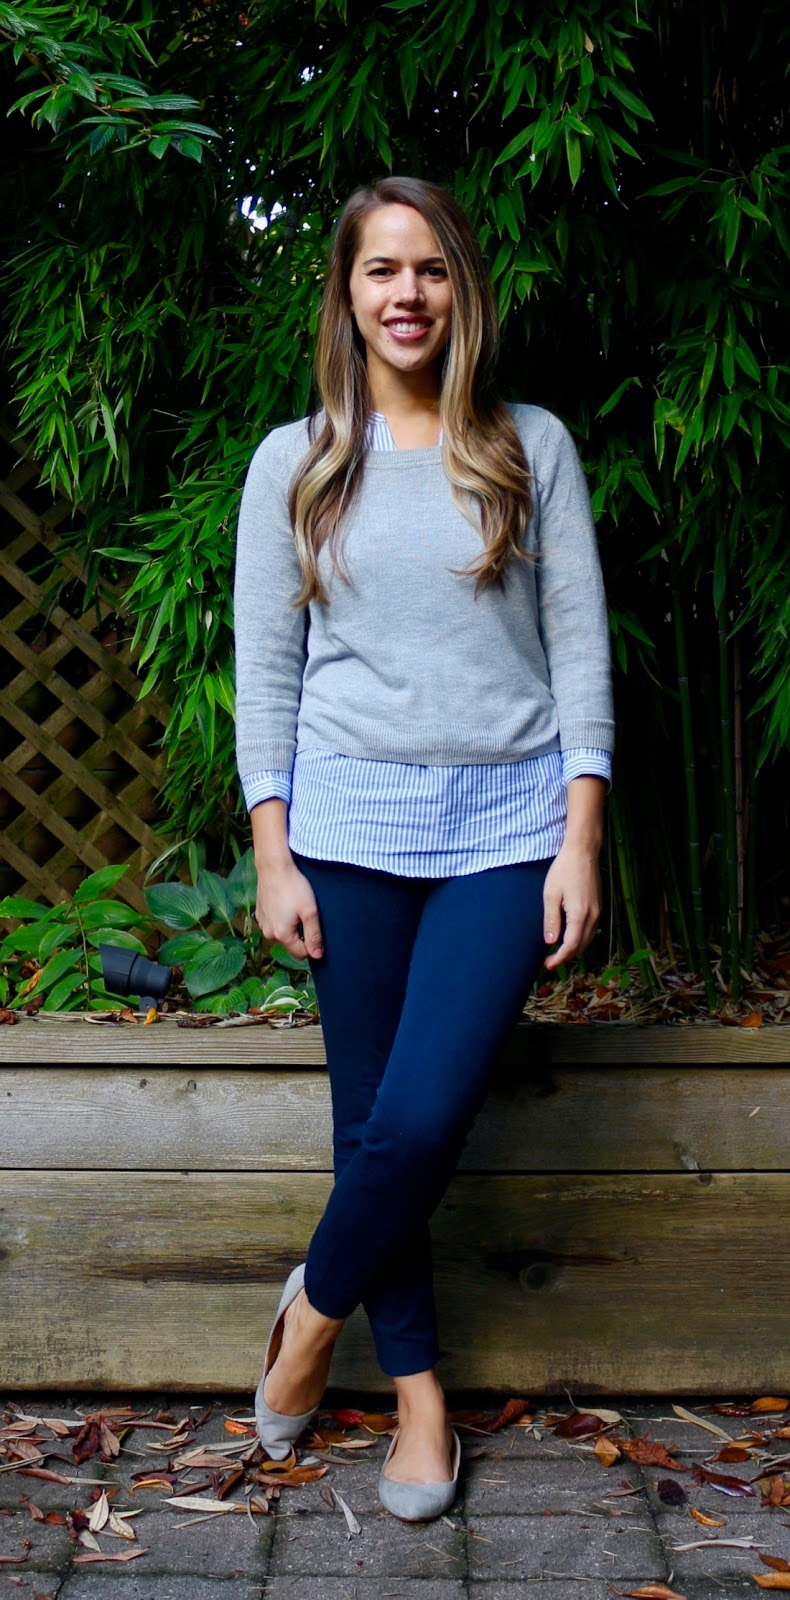 Jules in Flats - Cropped Sweater with Striped Shirt (Business Casual Fall Workwear on a Budget)